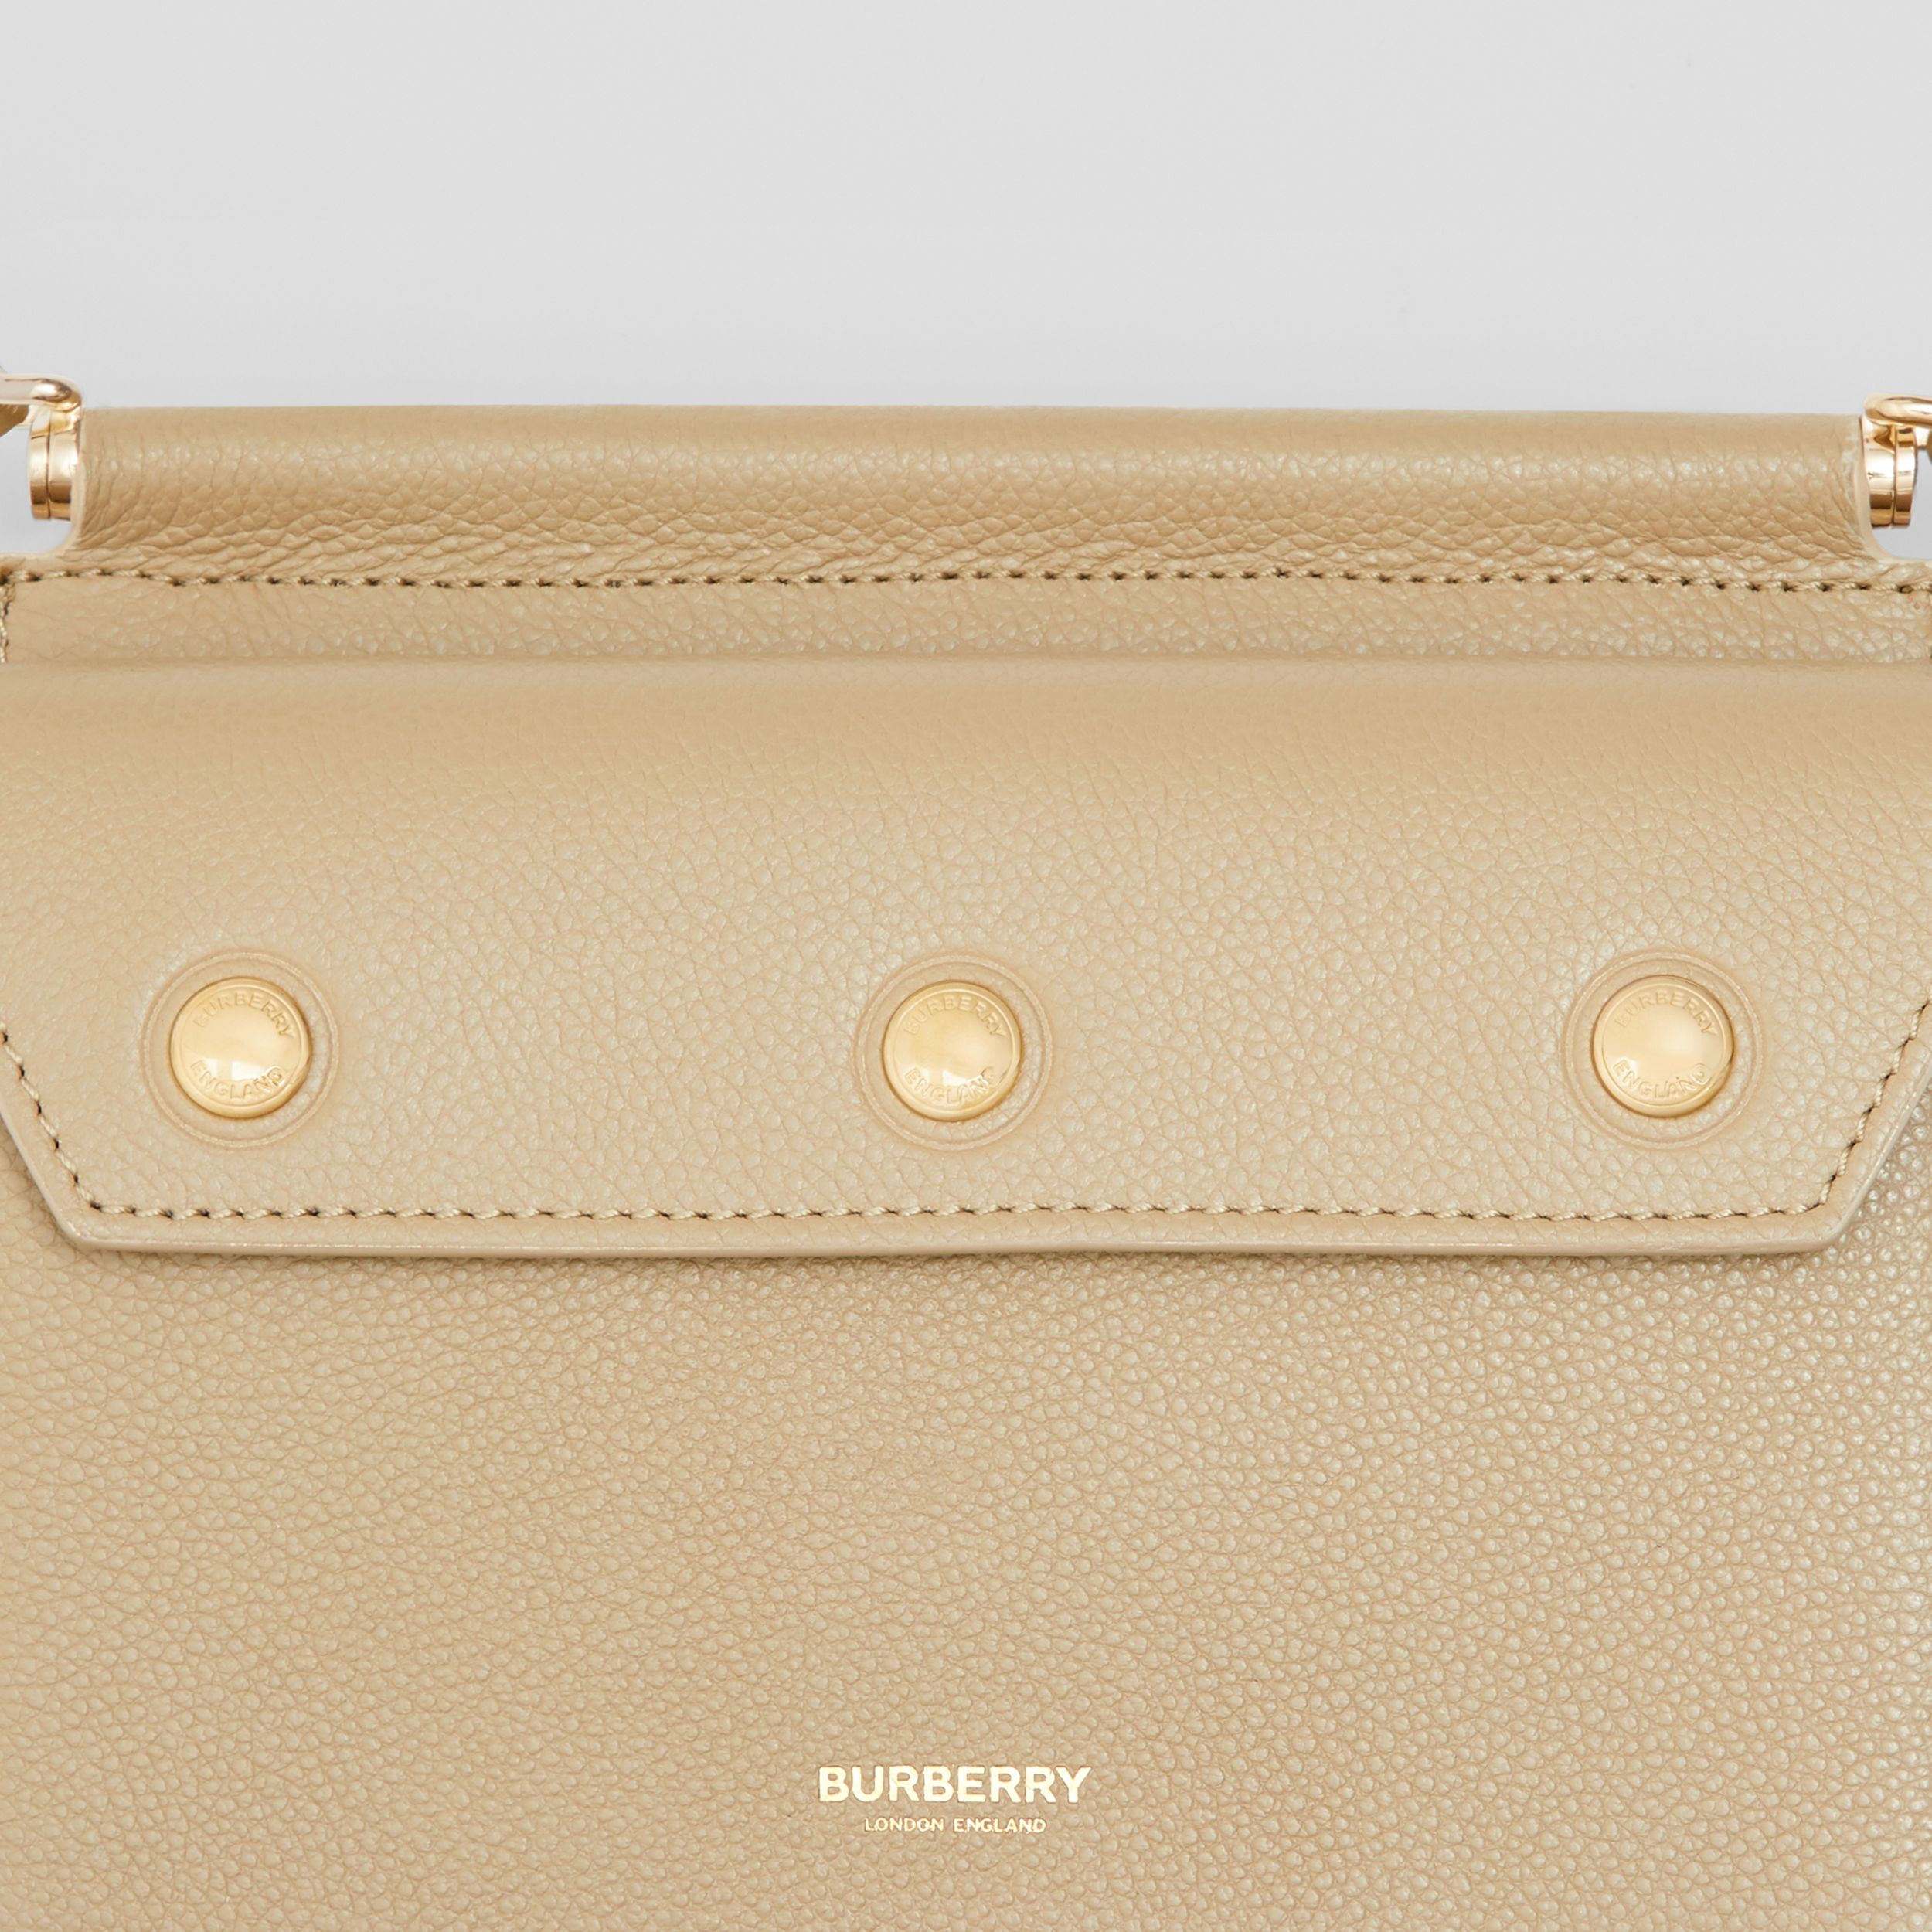 Mini Leather Title Bag with Pocket Detail in Honey - Women | Burberry - 2